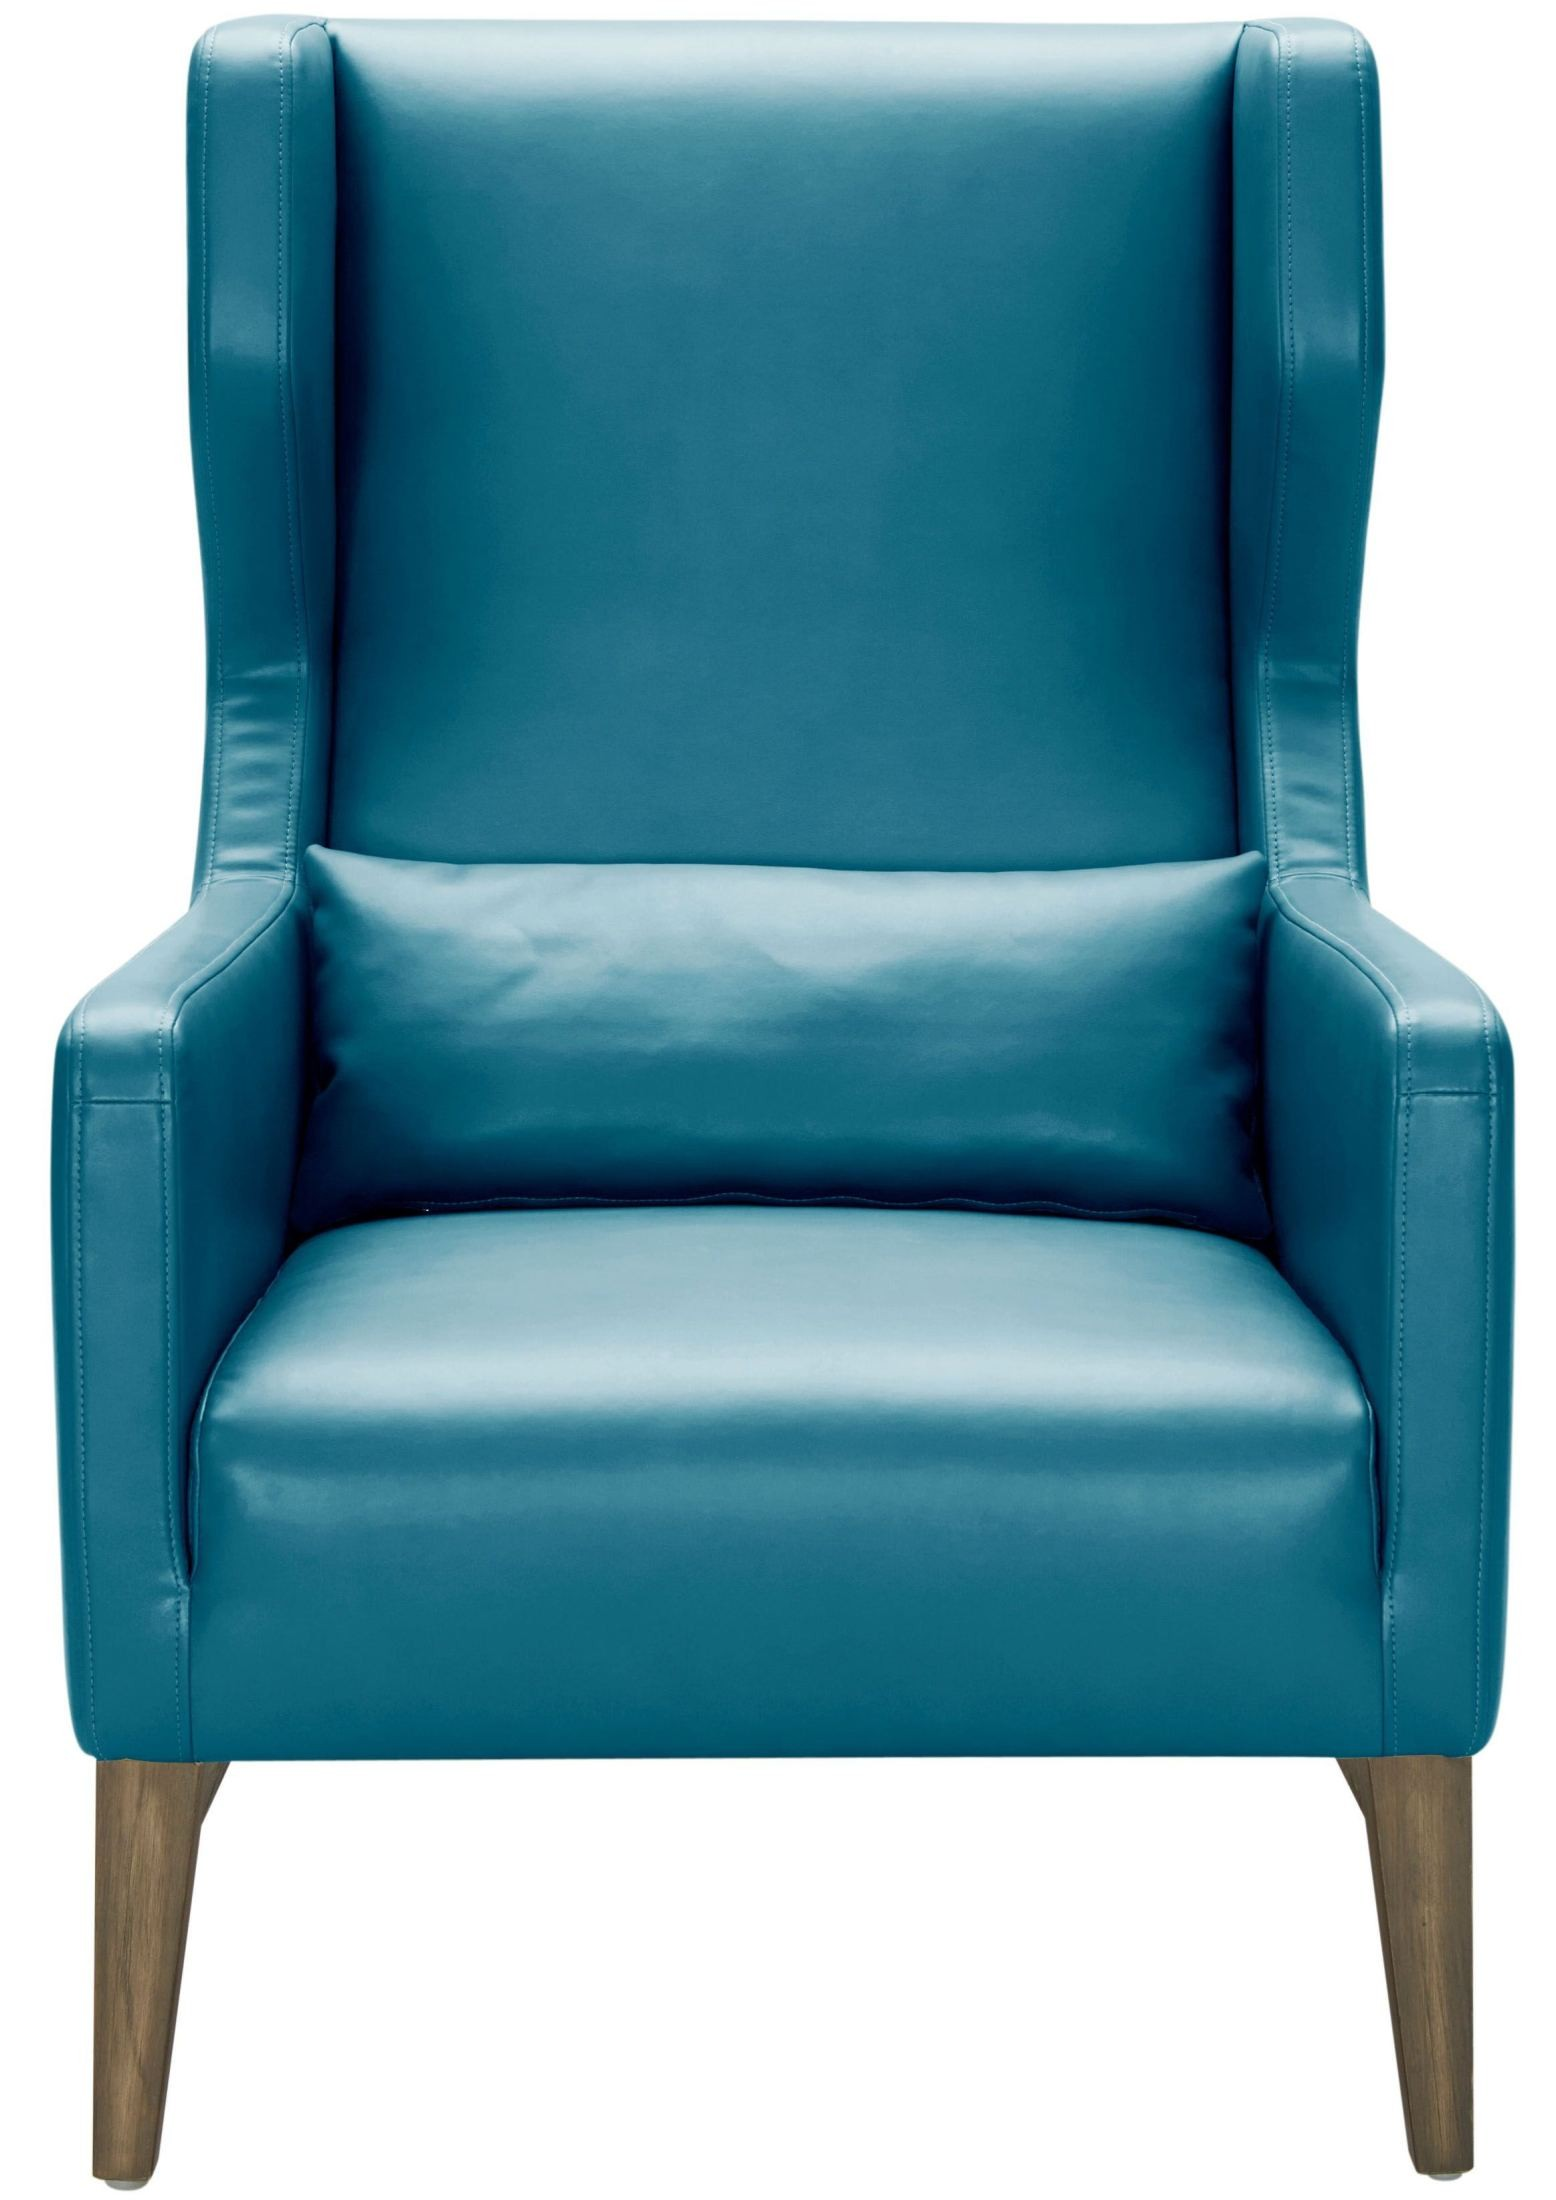 Turquoise Leather Chair Messina Turquoise Leather Armchair 100701 Sunpan Modern Home